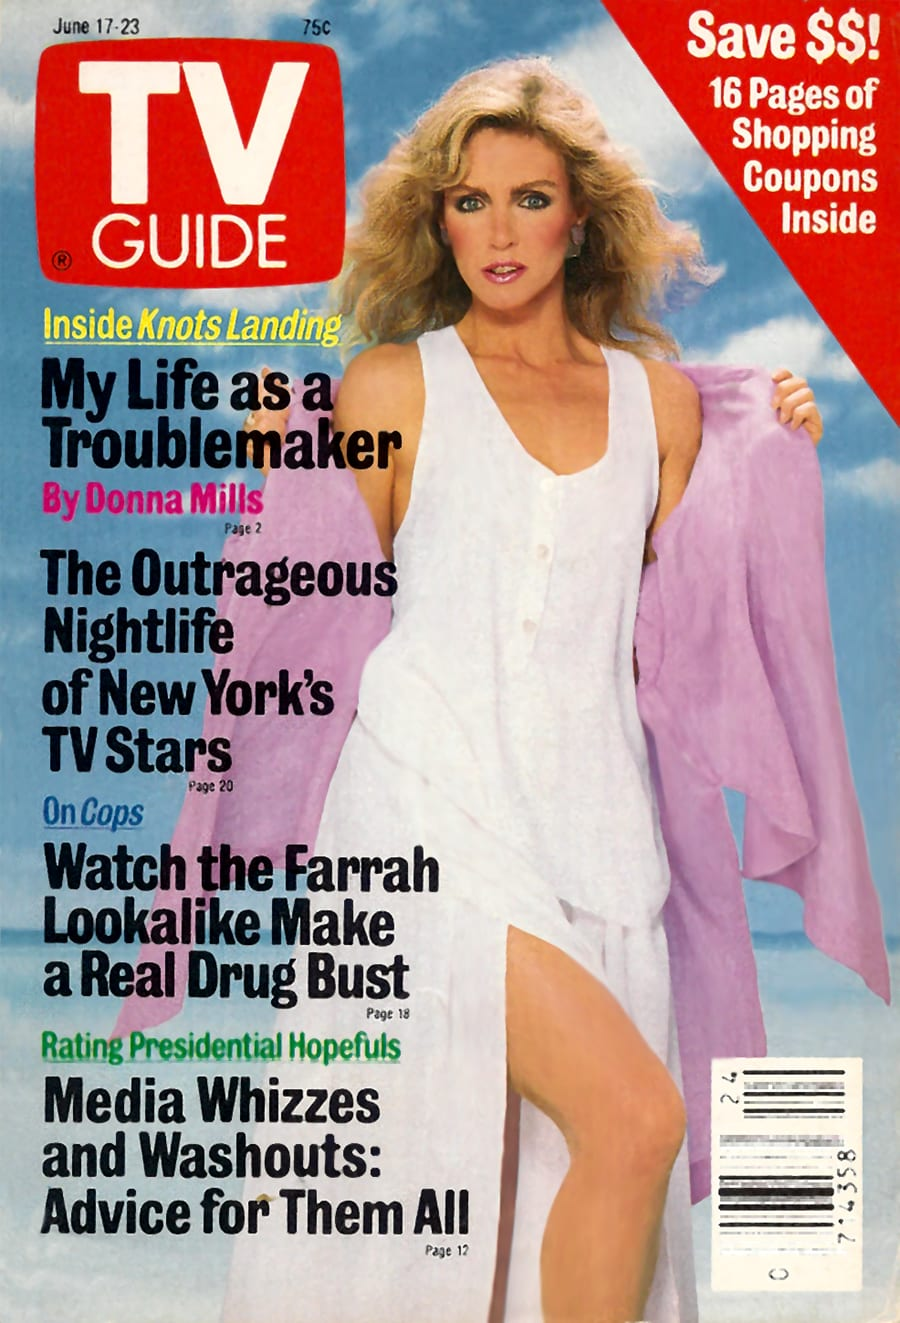 tv guide. tv guide covers. disclaimer tv